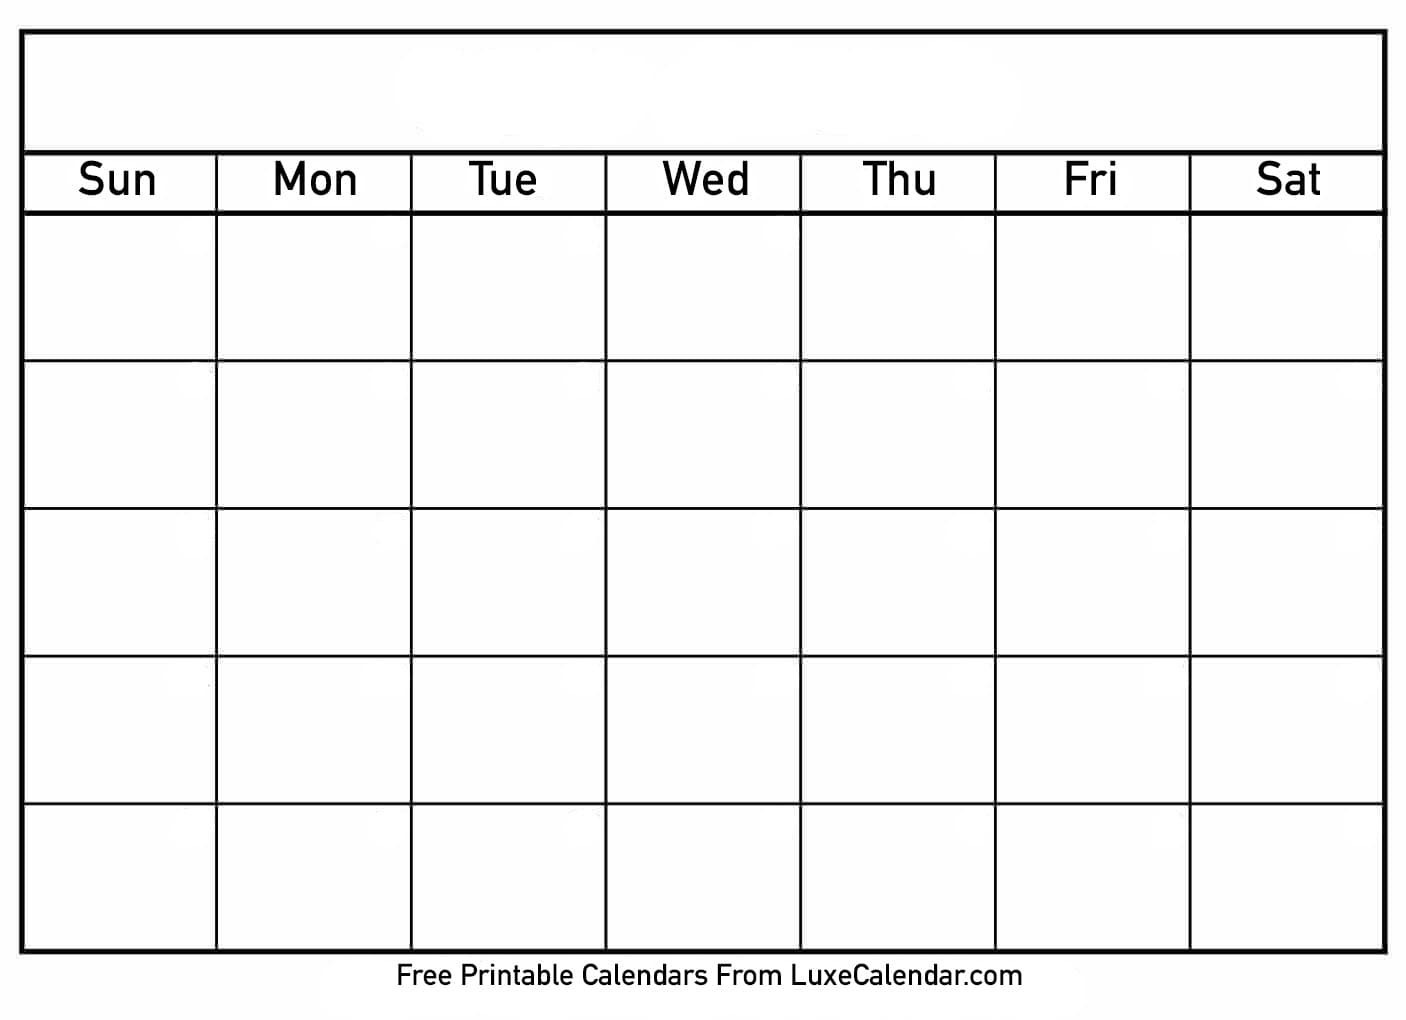 Blank Printable Calendar - Luxe Calendar-Printable Calendar Template With Notes